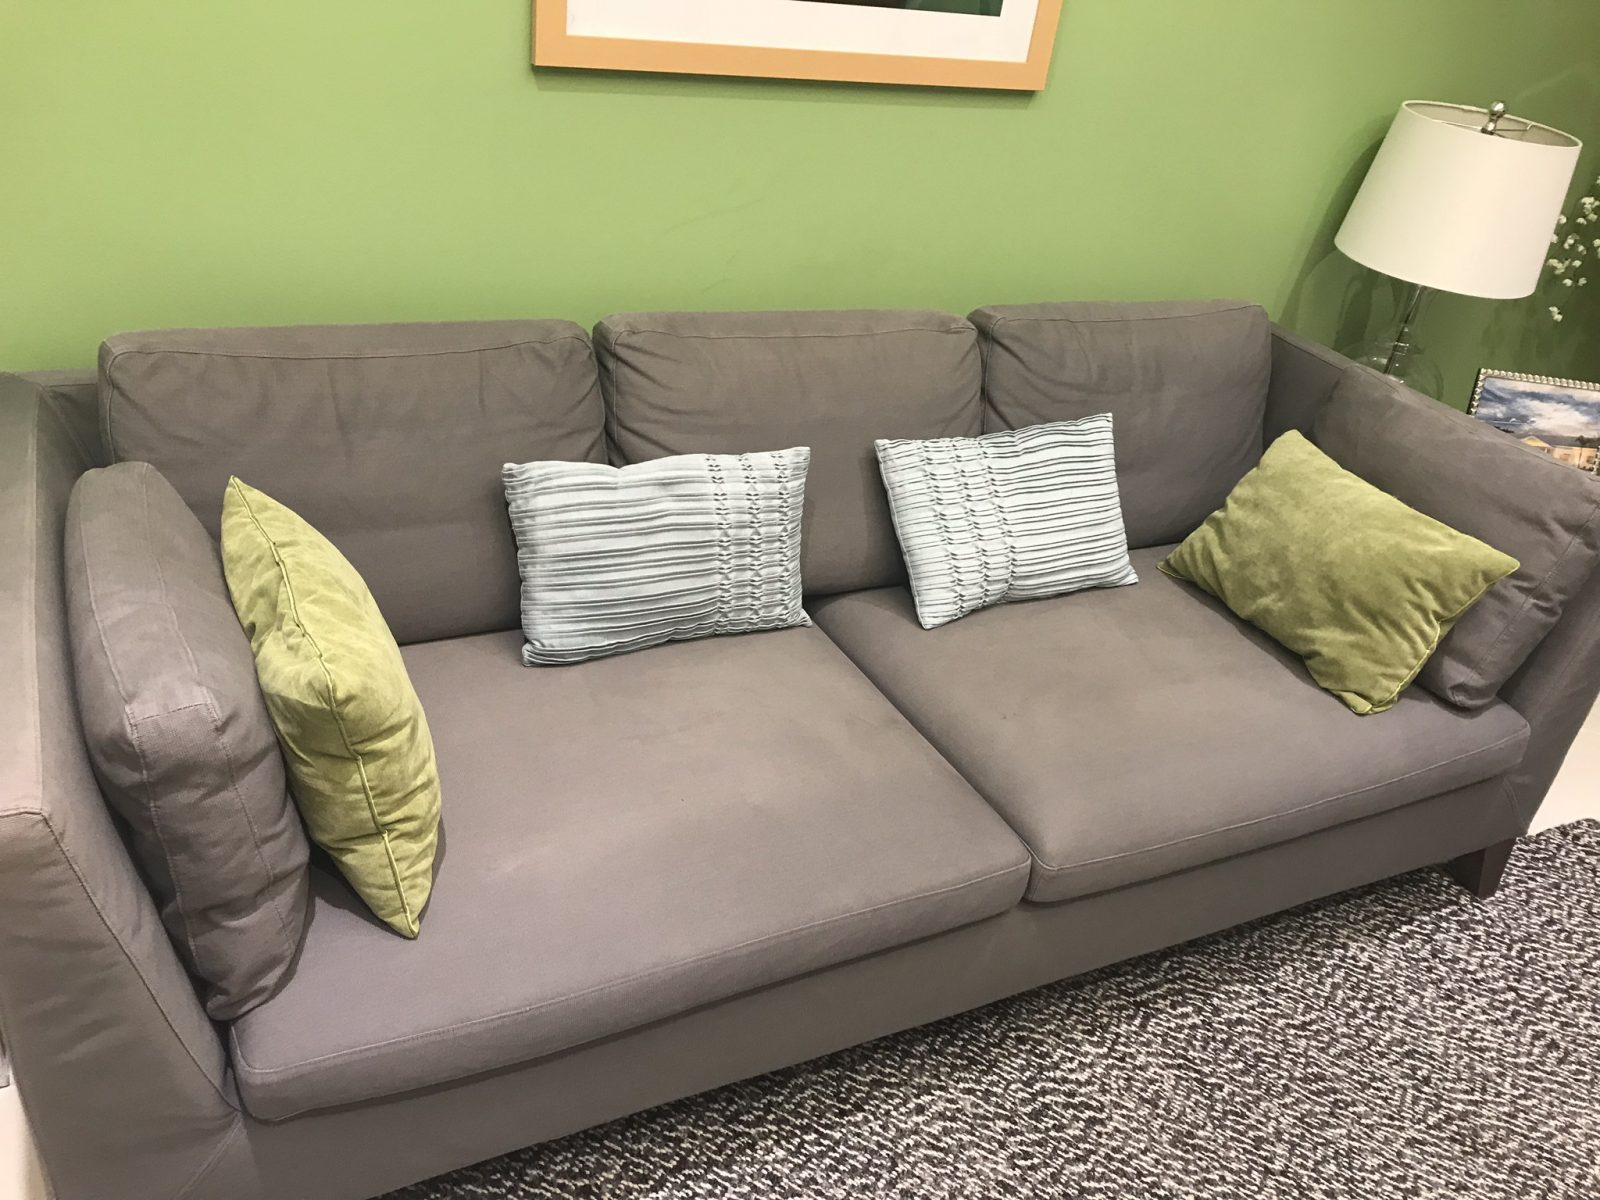 Professional Upholstery Cleaning Clearwater Florida by Howards Cleaning Service